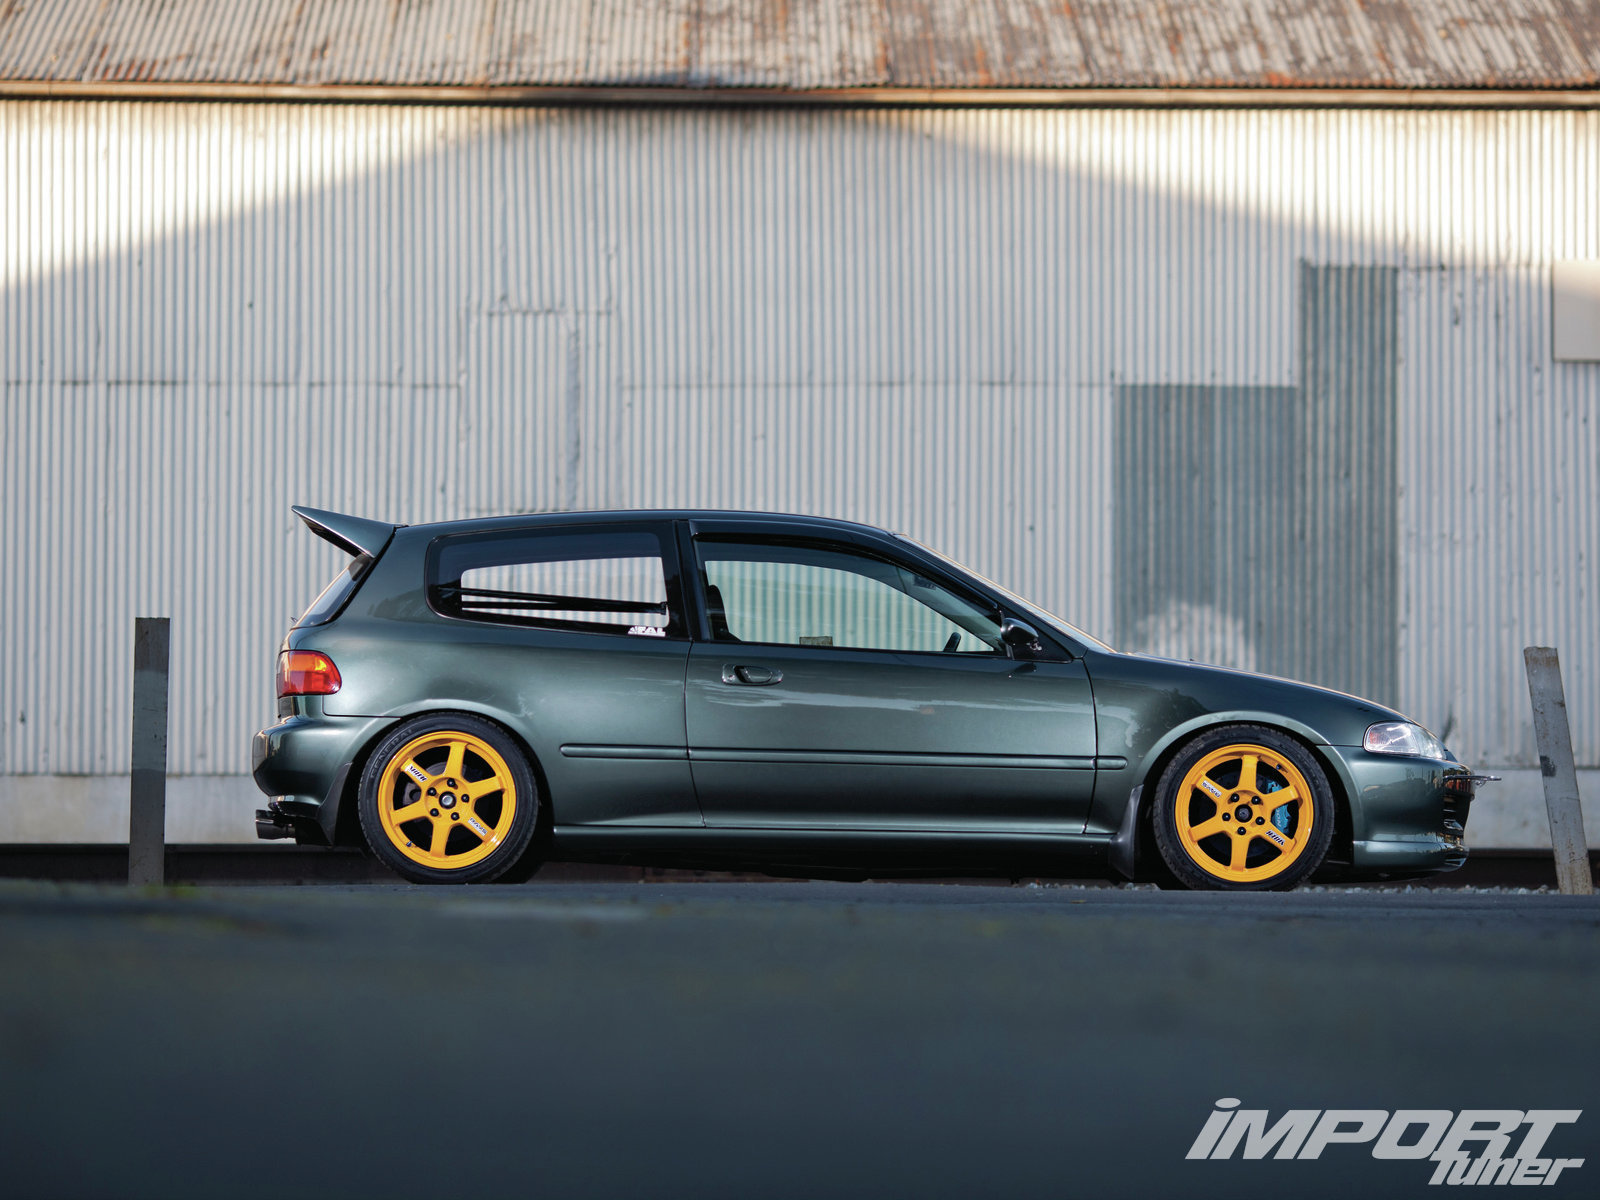 3dtuning Of Honda Civic 3 Door Hatchback 1992 3dtuning Com